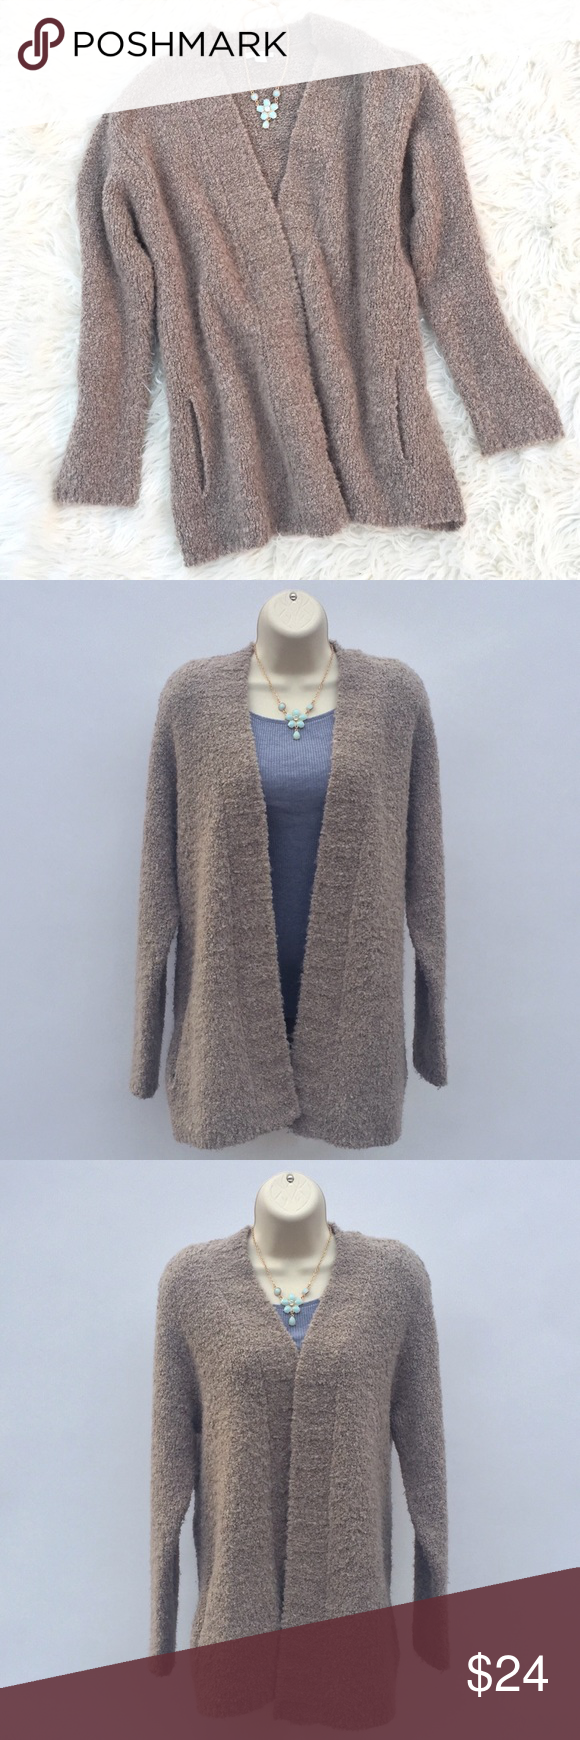 Cozy light brown cardigan sweater from J. Jill